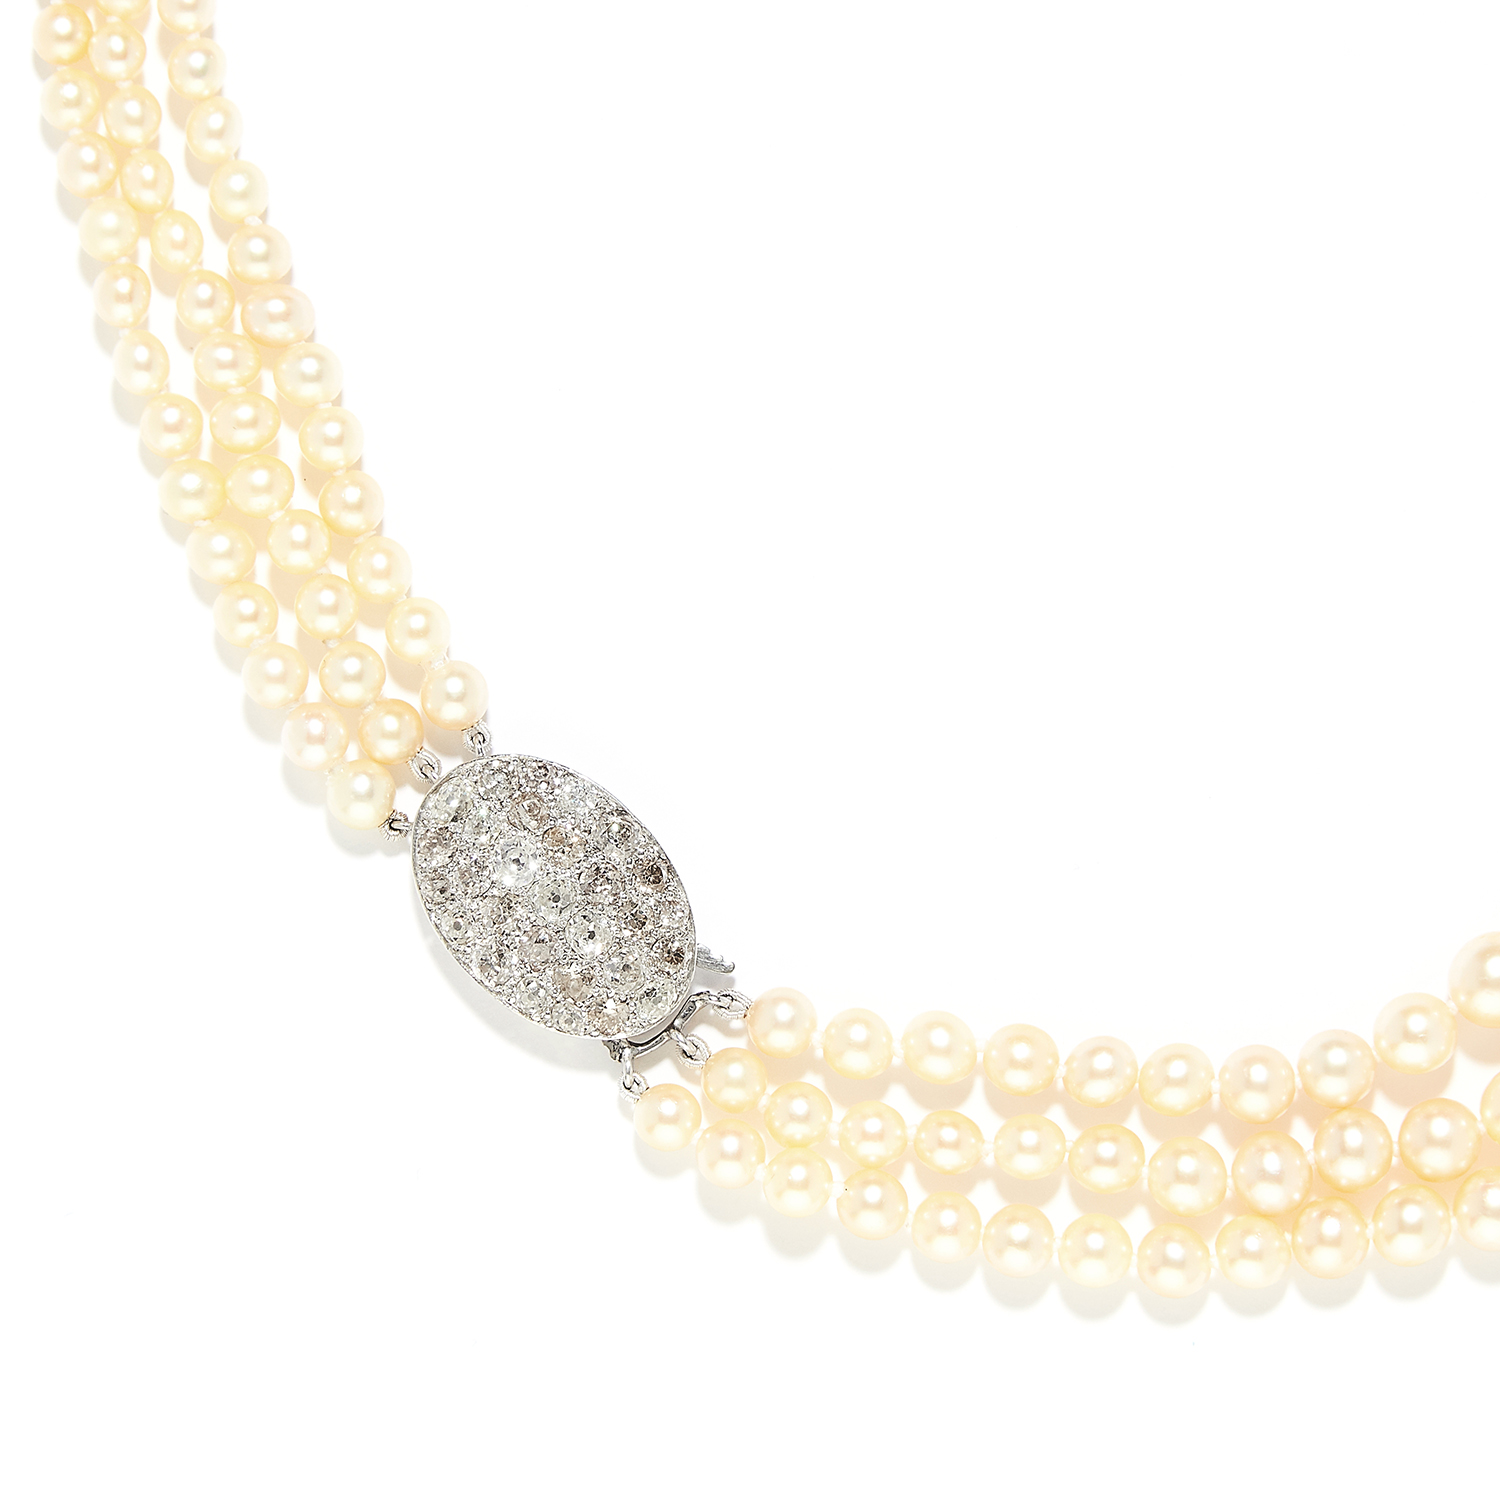 THREE ROW PEARL AND DIAMOND NECKLACE in white gold or platinum, comprising three rows of graduated